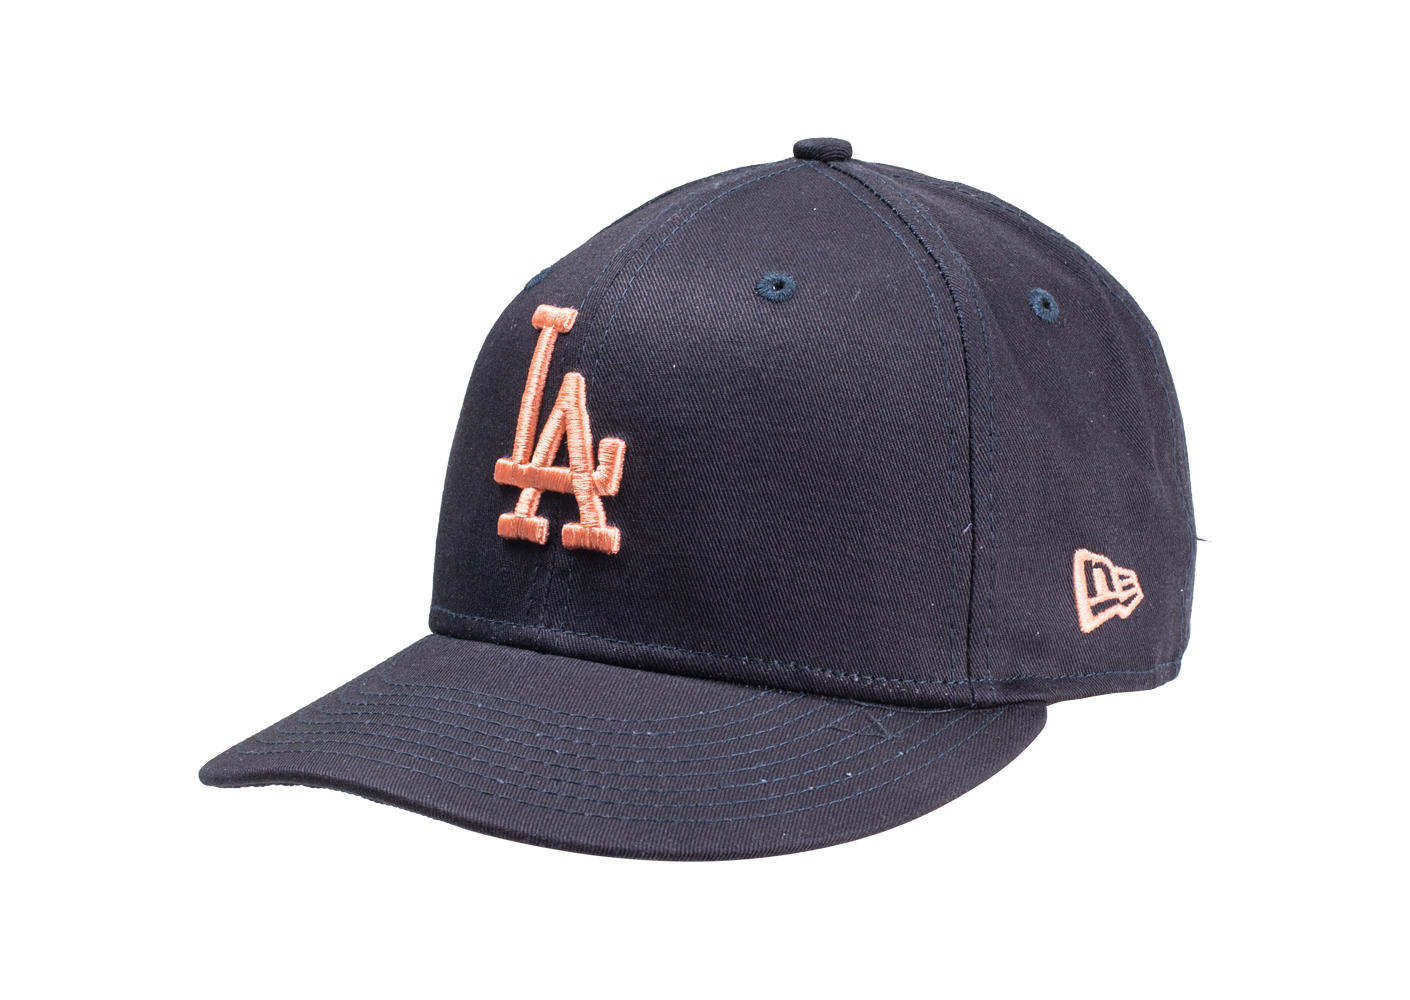 New Era Homme Casquette League La Bleu Marine